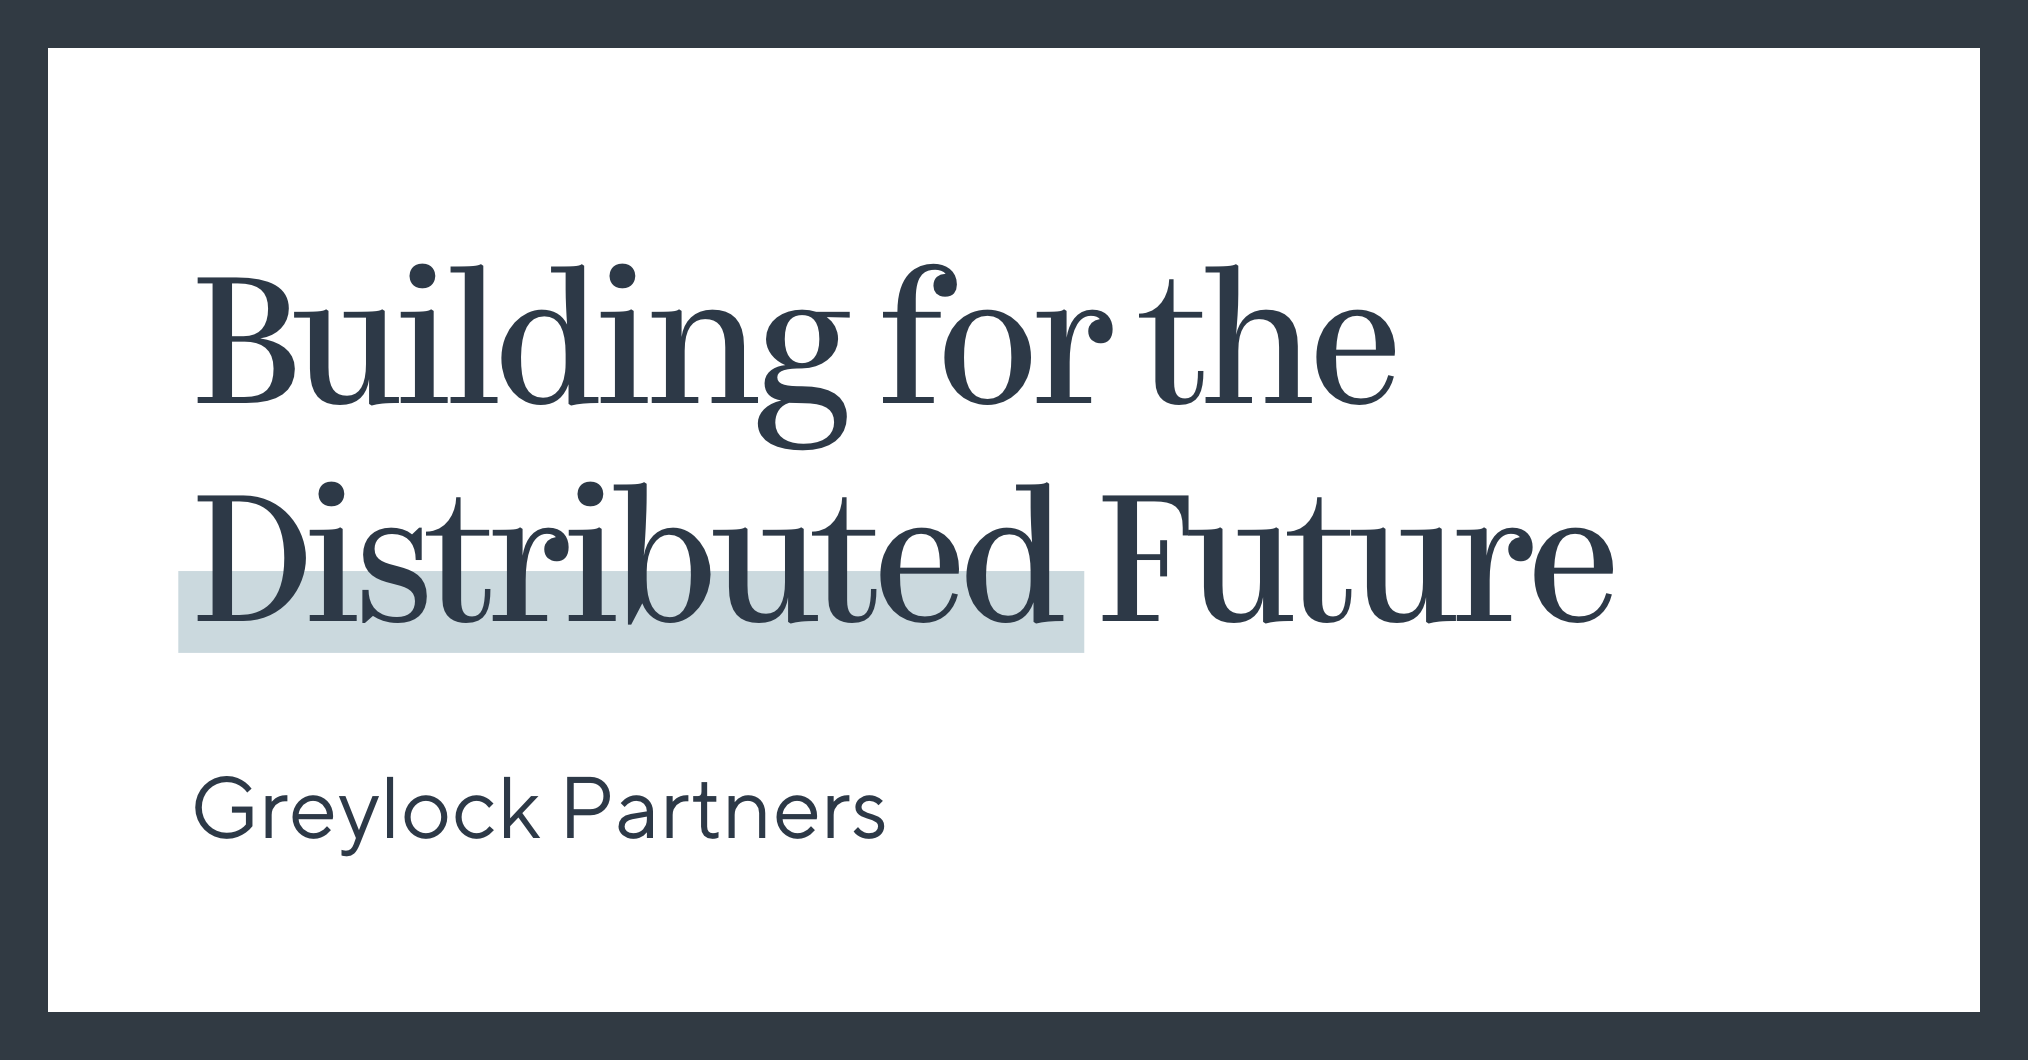 Building for the Distributed Future